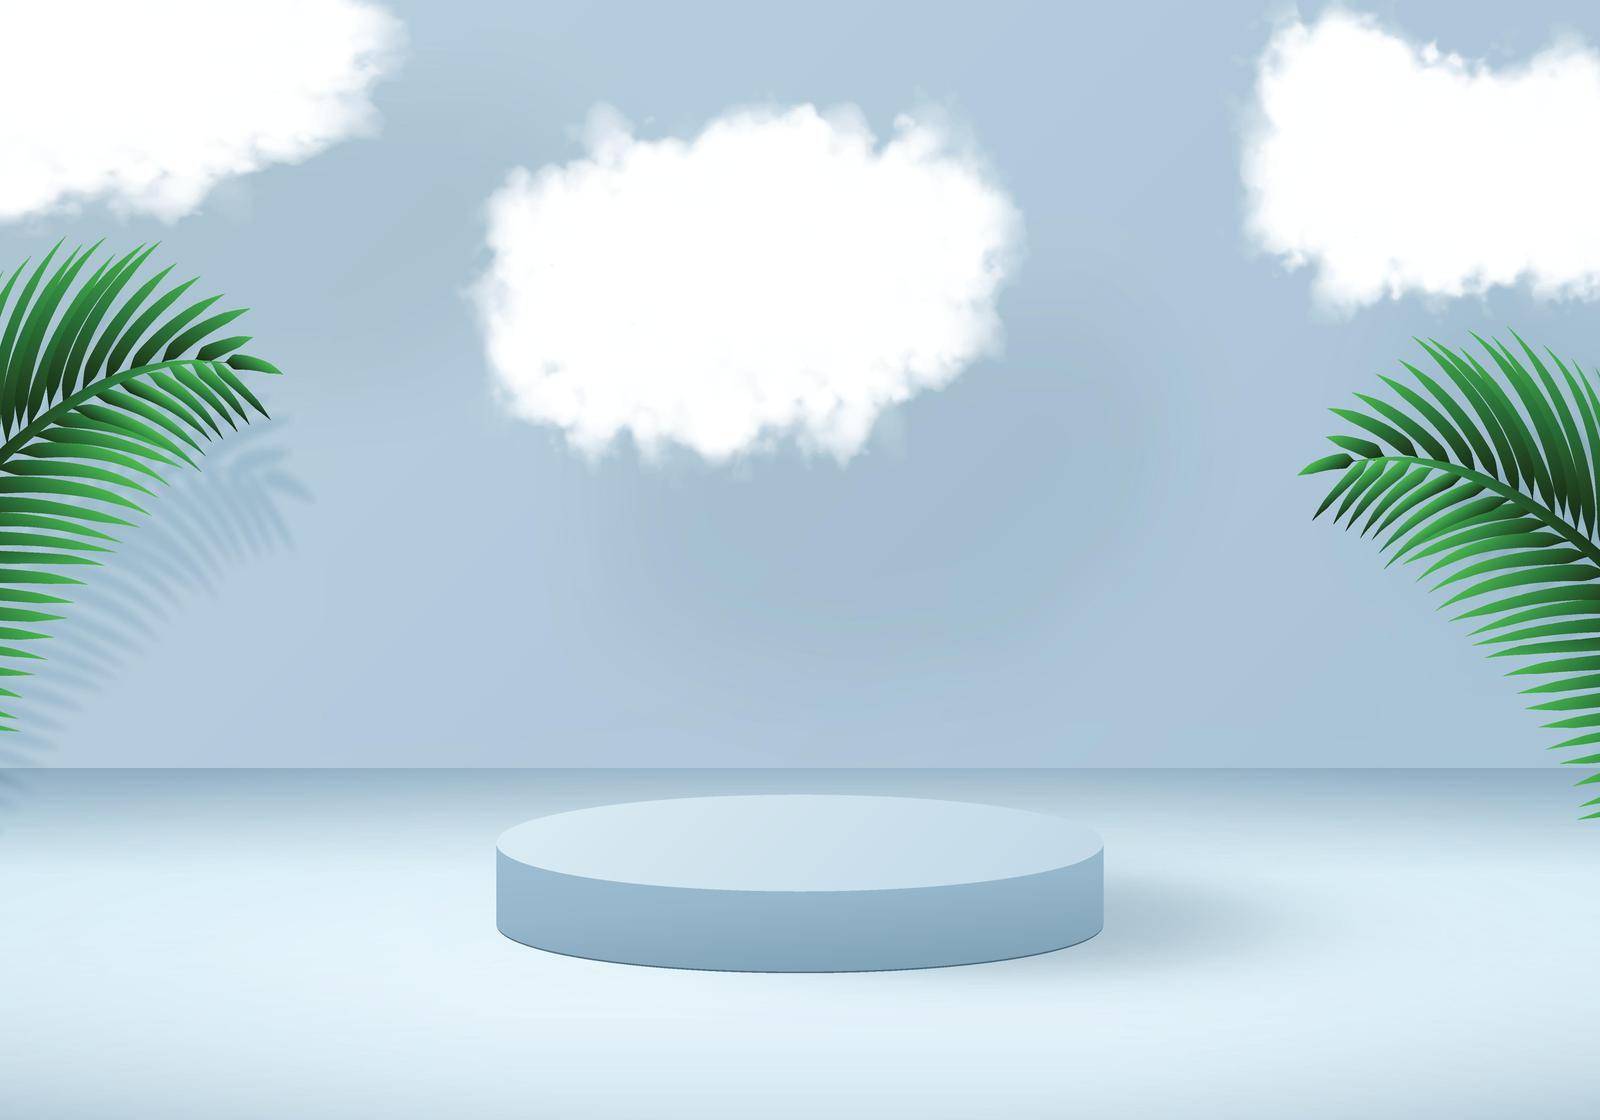 3D vector design. Tropical background with podium in blue color. Palm leaves and clouds decoration.